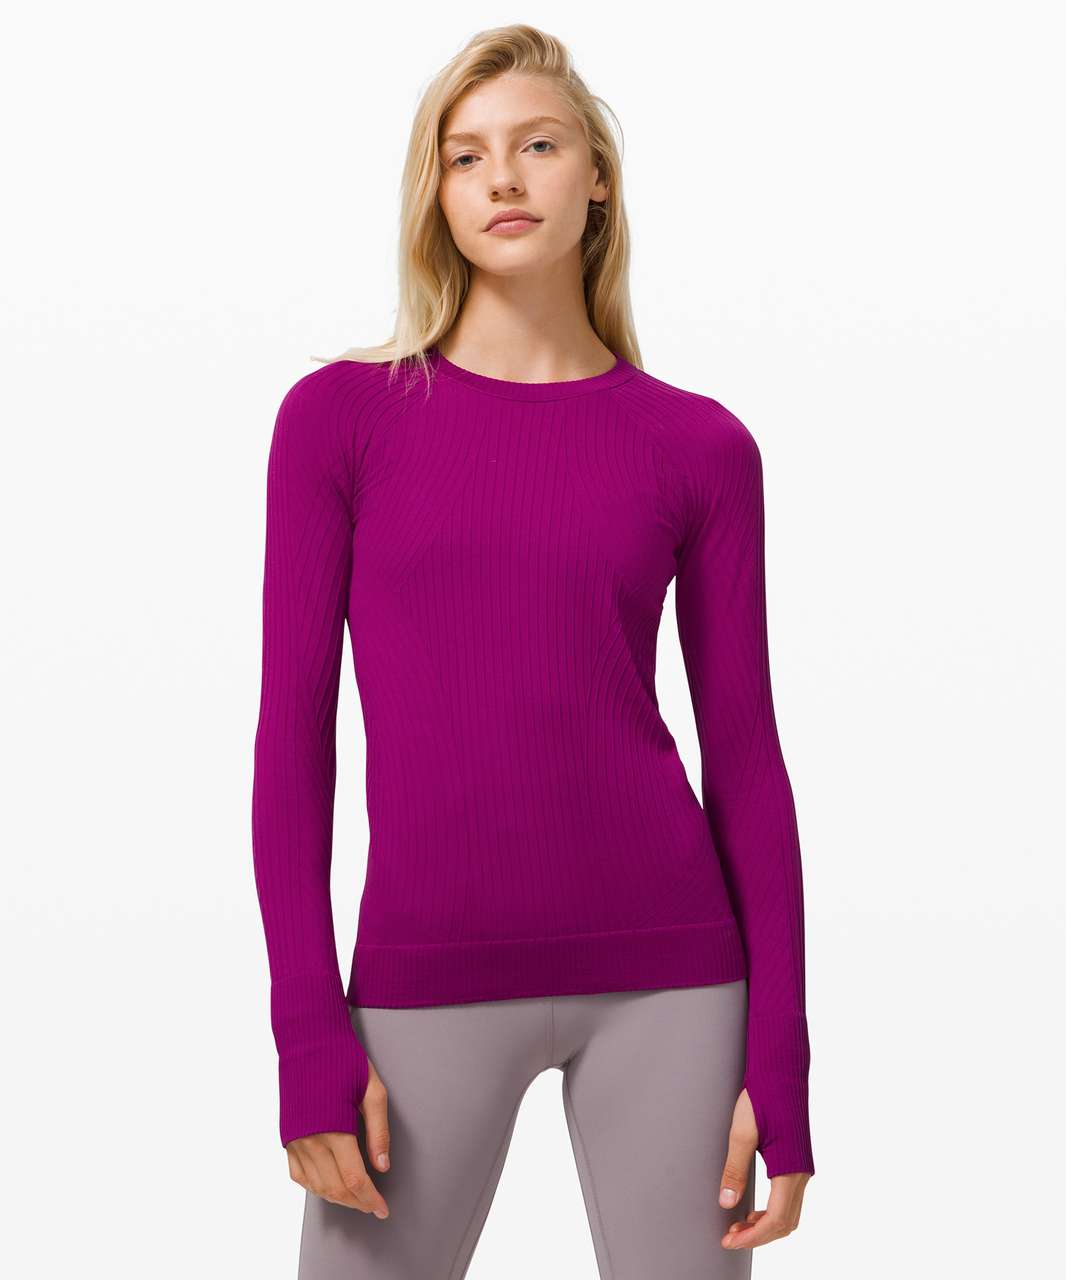 Lululemon Rest Less Pullover - Aerial Current Deep Fuschia / Highlight Purple